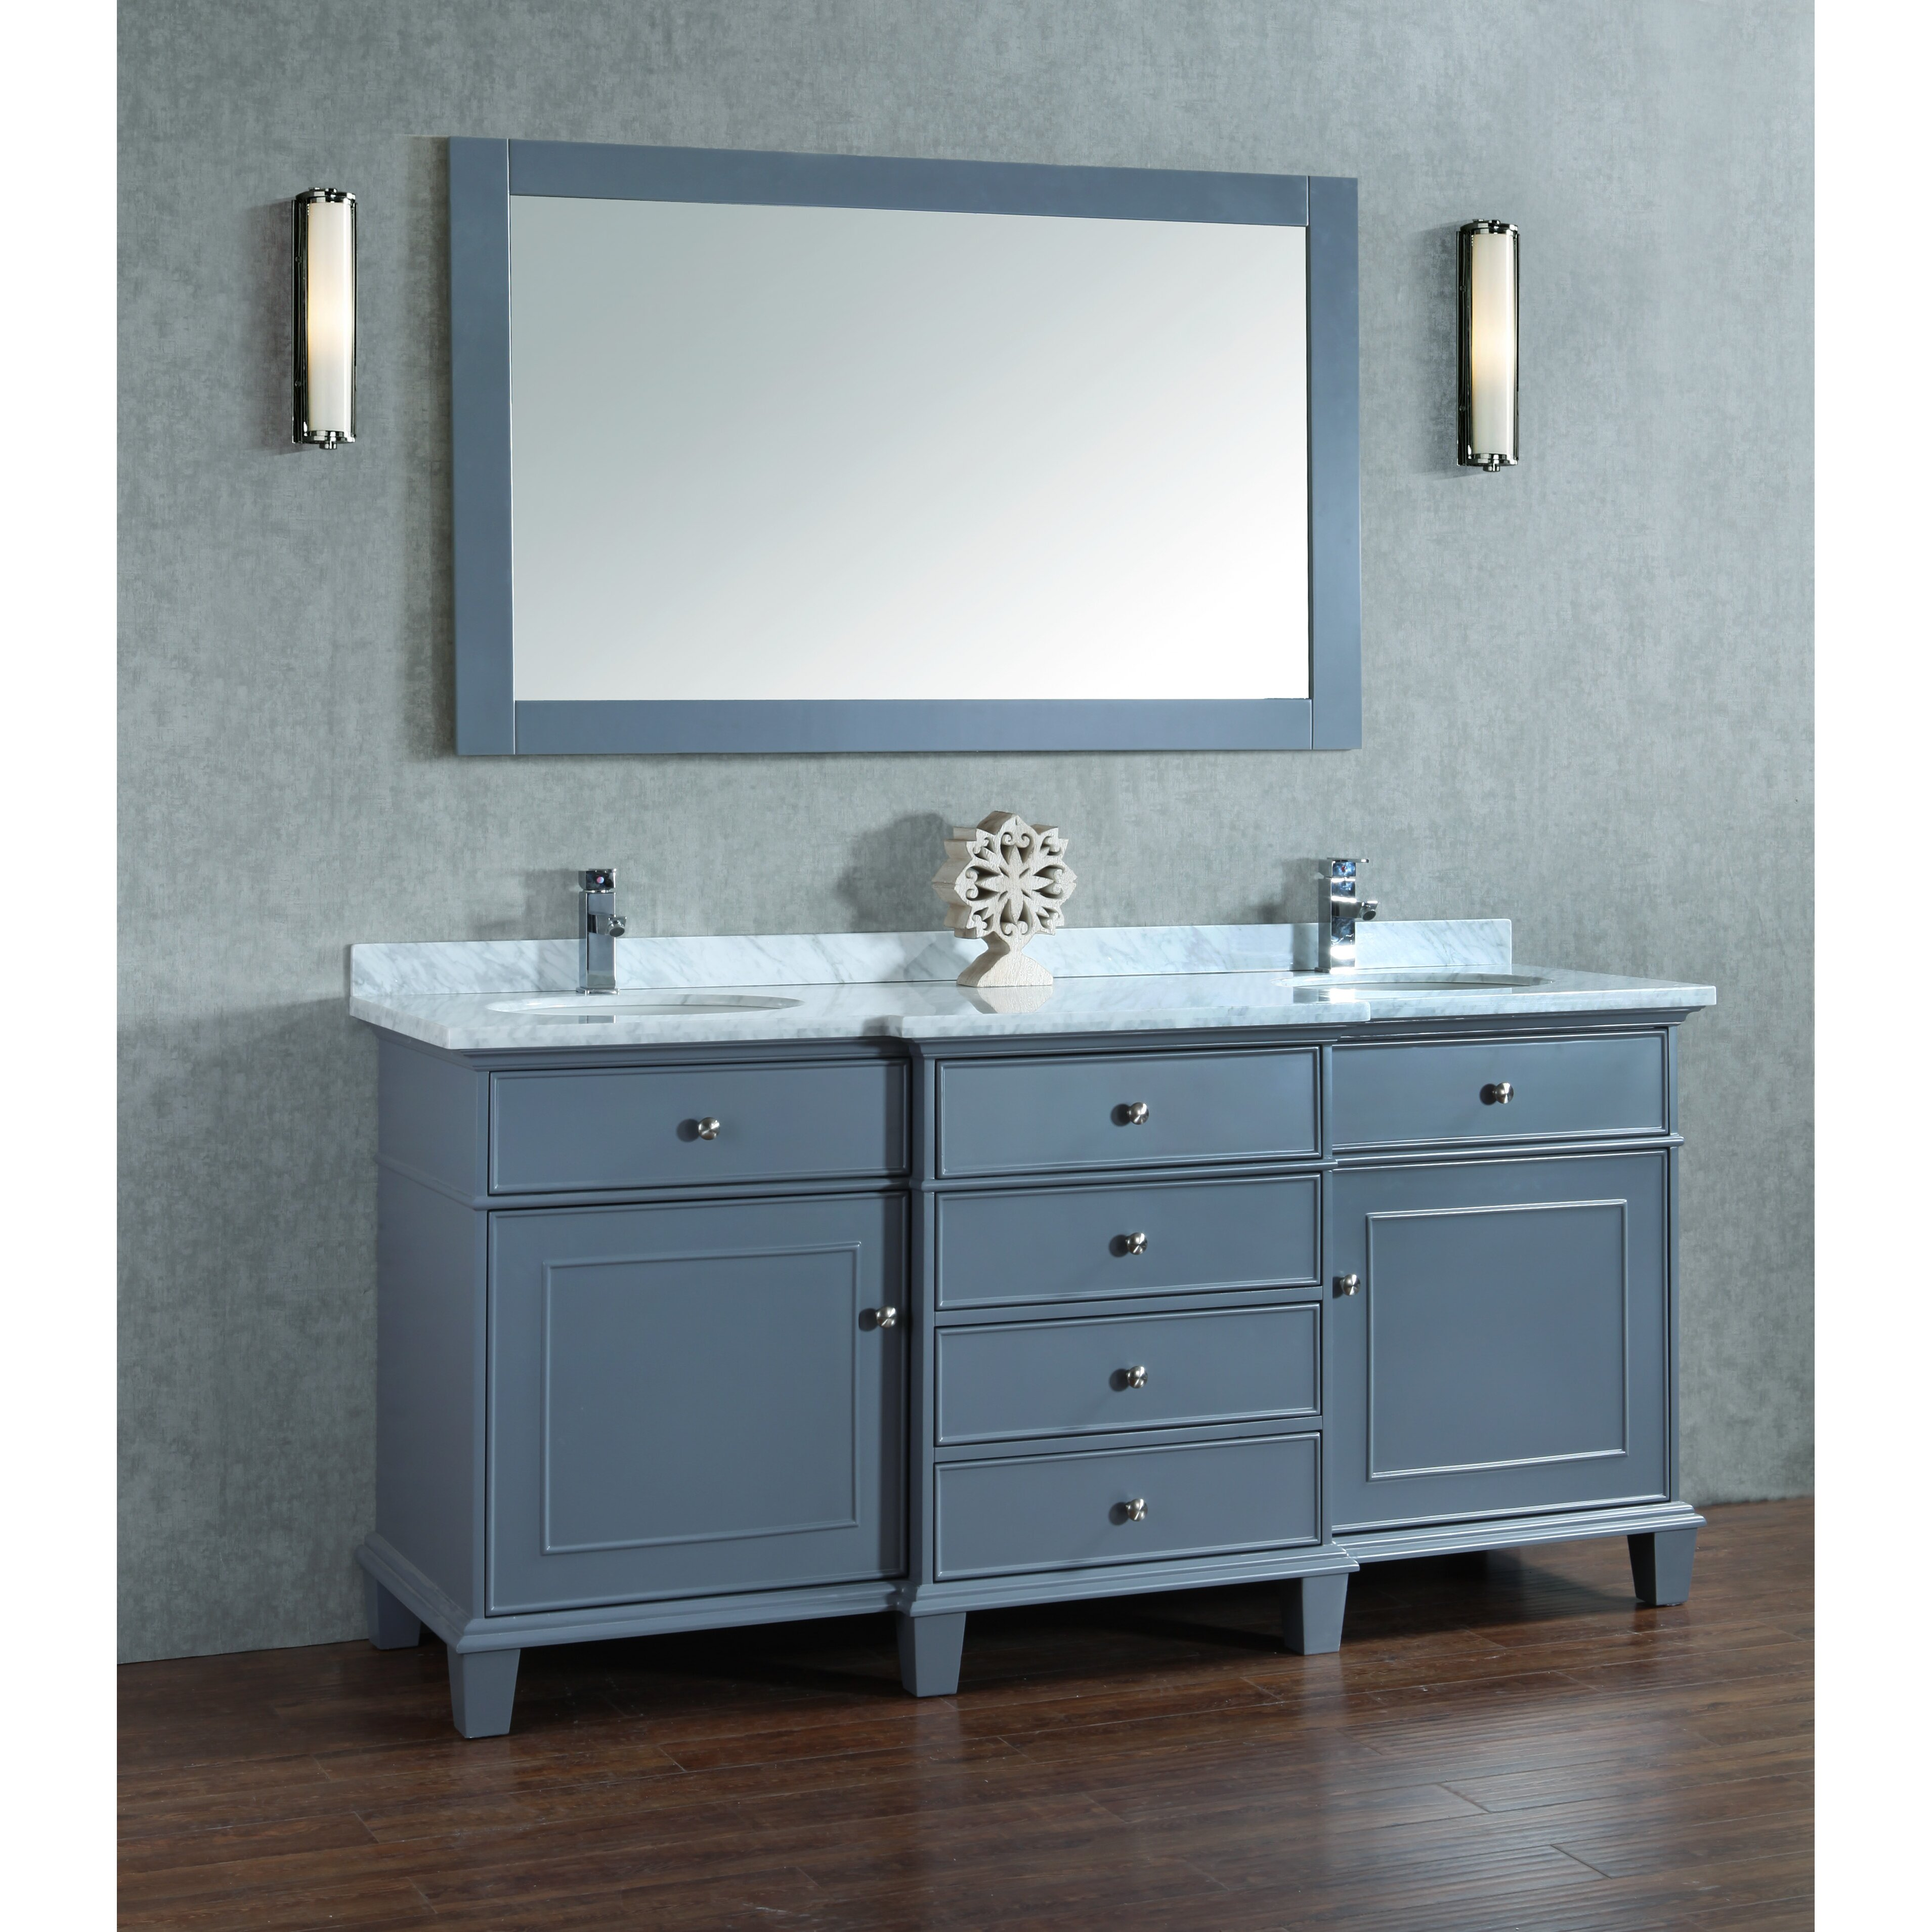 Dcor Design Melton 72 Double Sink Bathroom Vanity Set With Mirror Reviews Wayfair